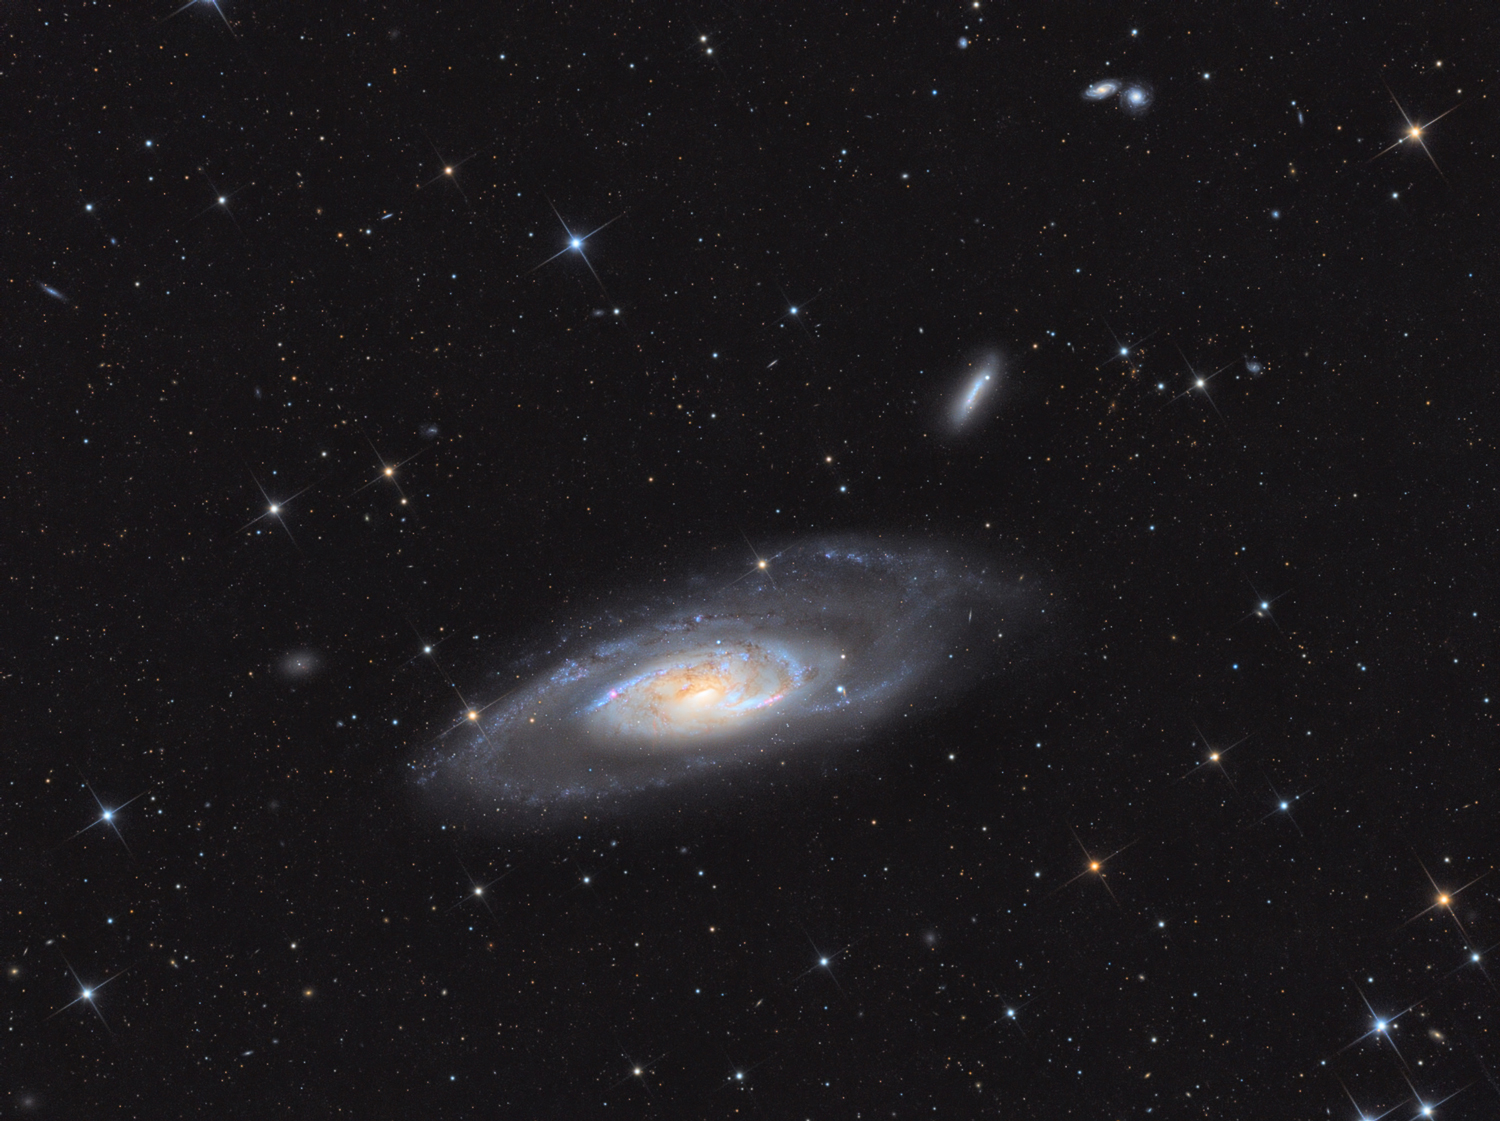 Final LRGB image Messier 106 in the constellation Canes Venatici made with ASI1600.